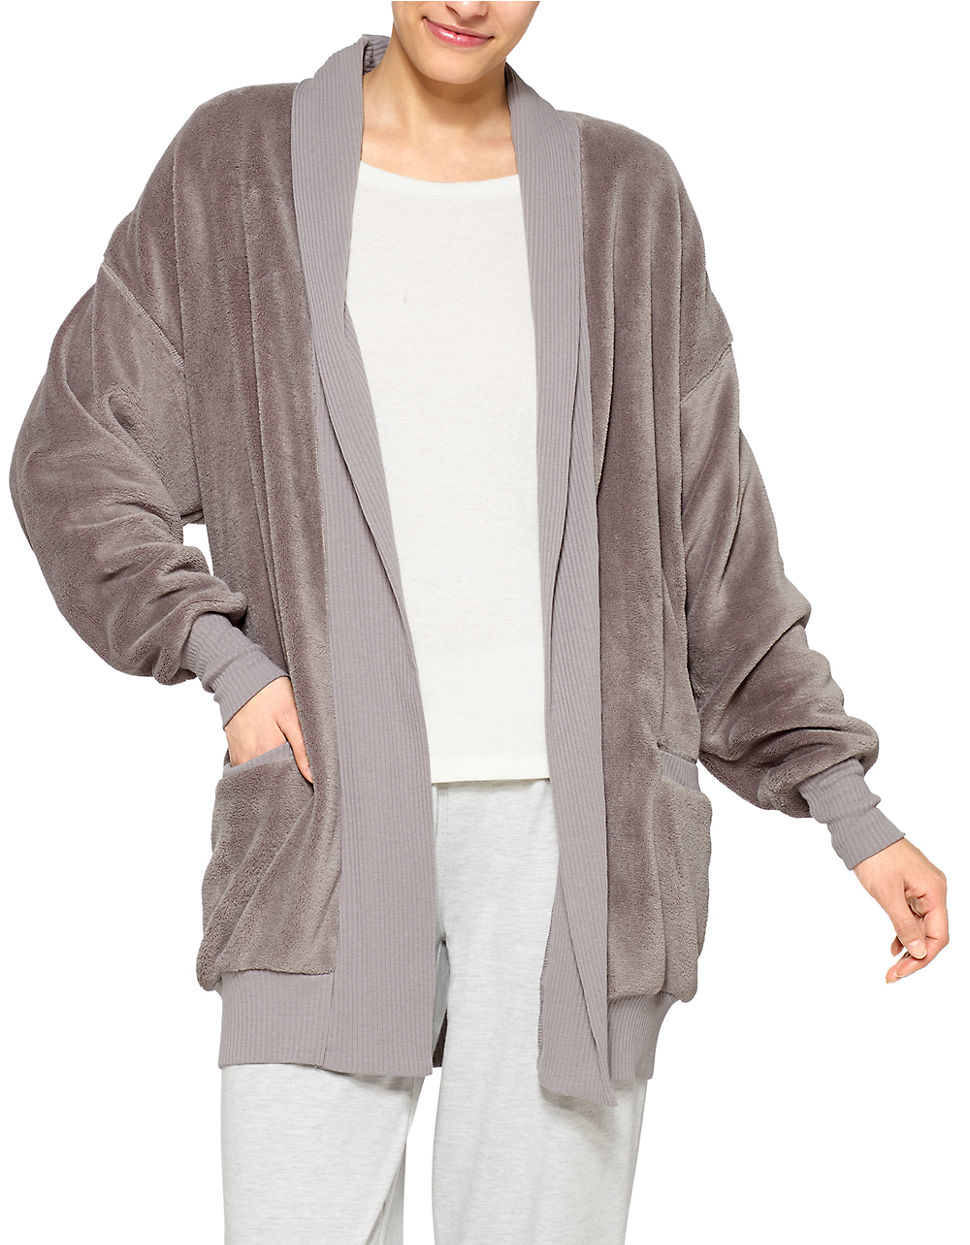 Hue Fleece Cardigan Robe in Gray | Lyst